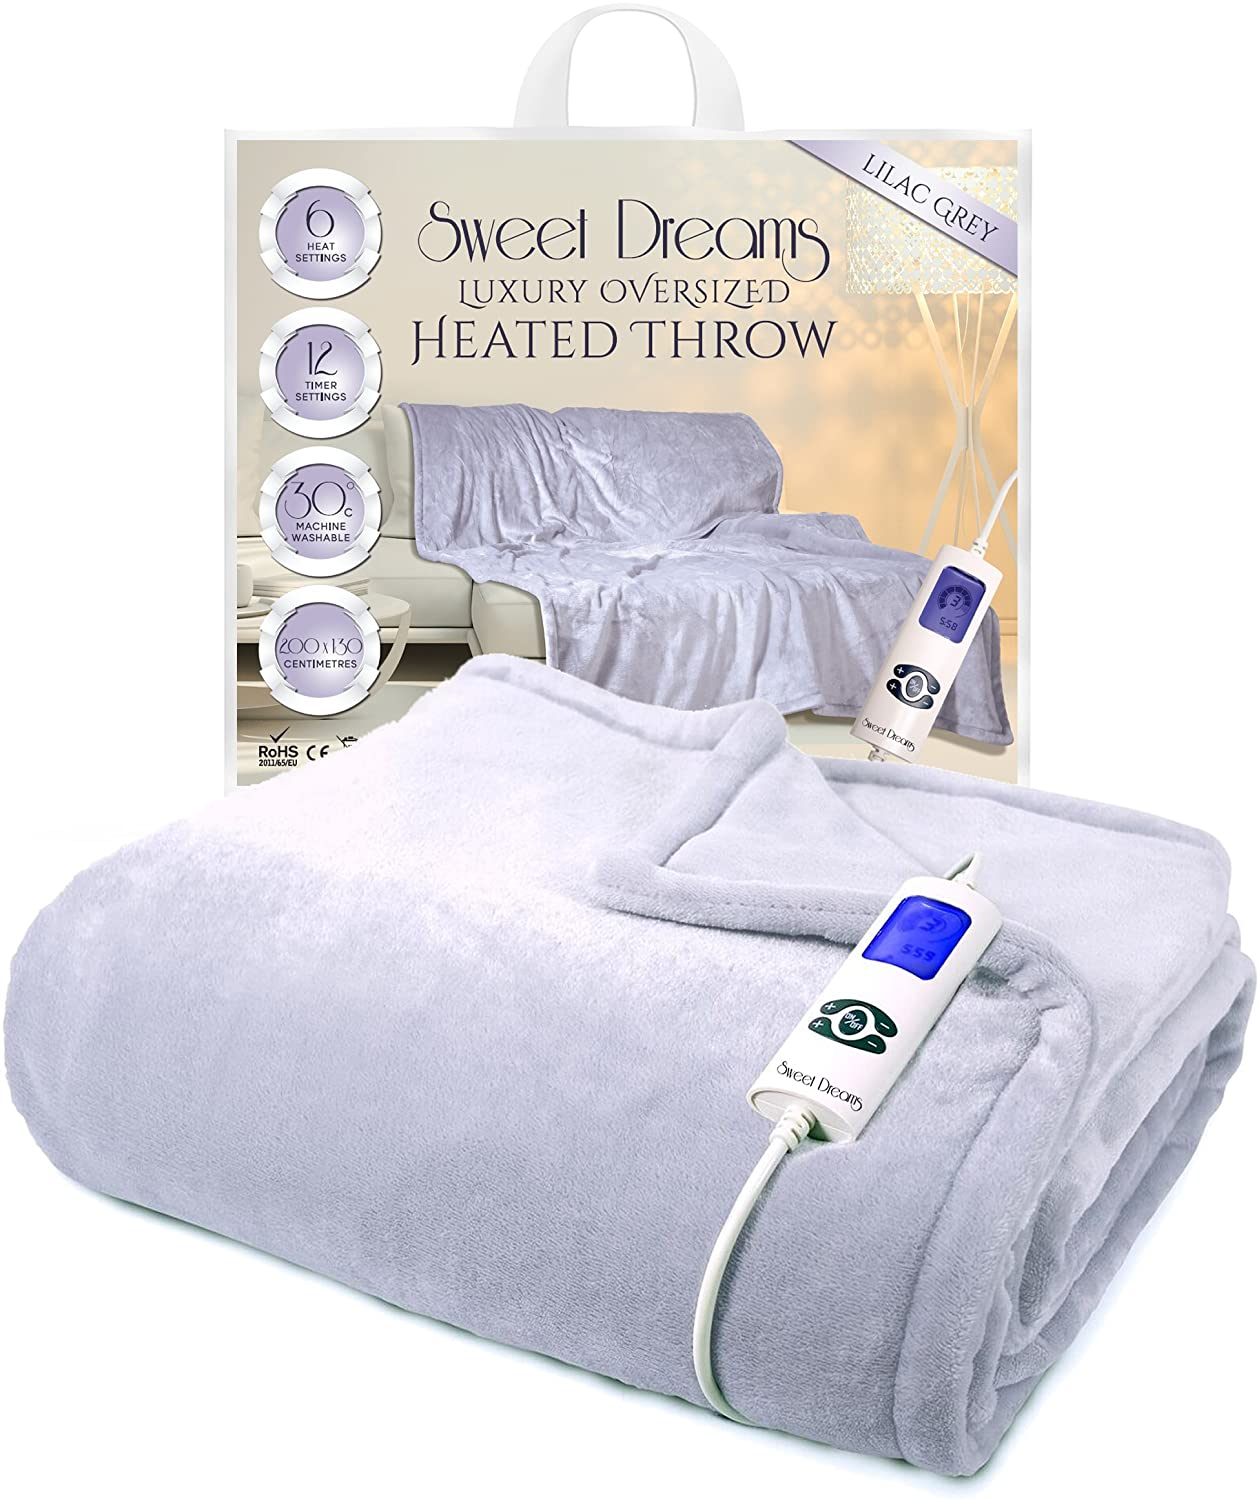 Sweet Dreams Electric Heated Throw / Blanket Luxury Large Oversized 200 x 130cm Overblanket with 6 Heat Settings & 12 Timer Settings (200x130cm, Lilac Grey)